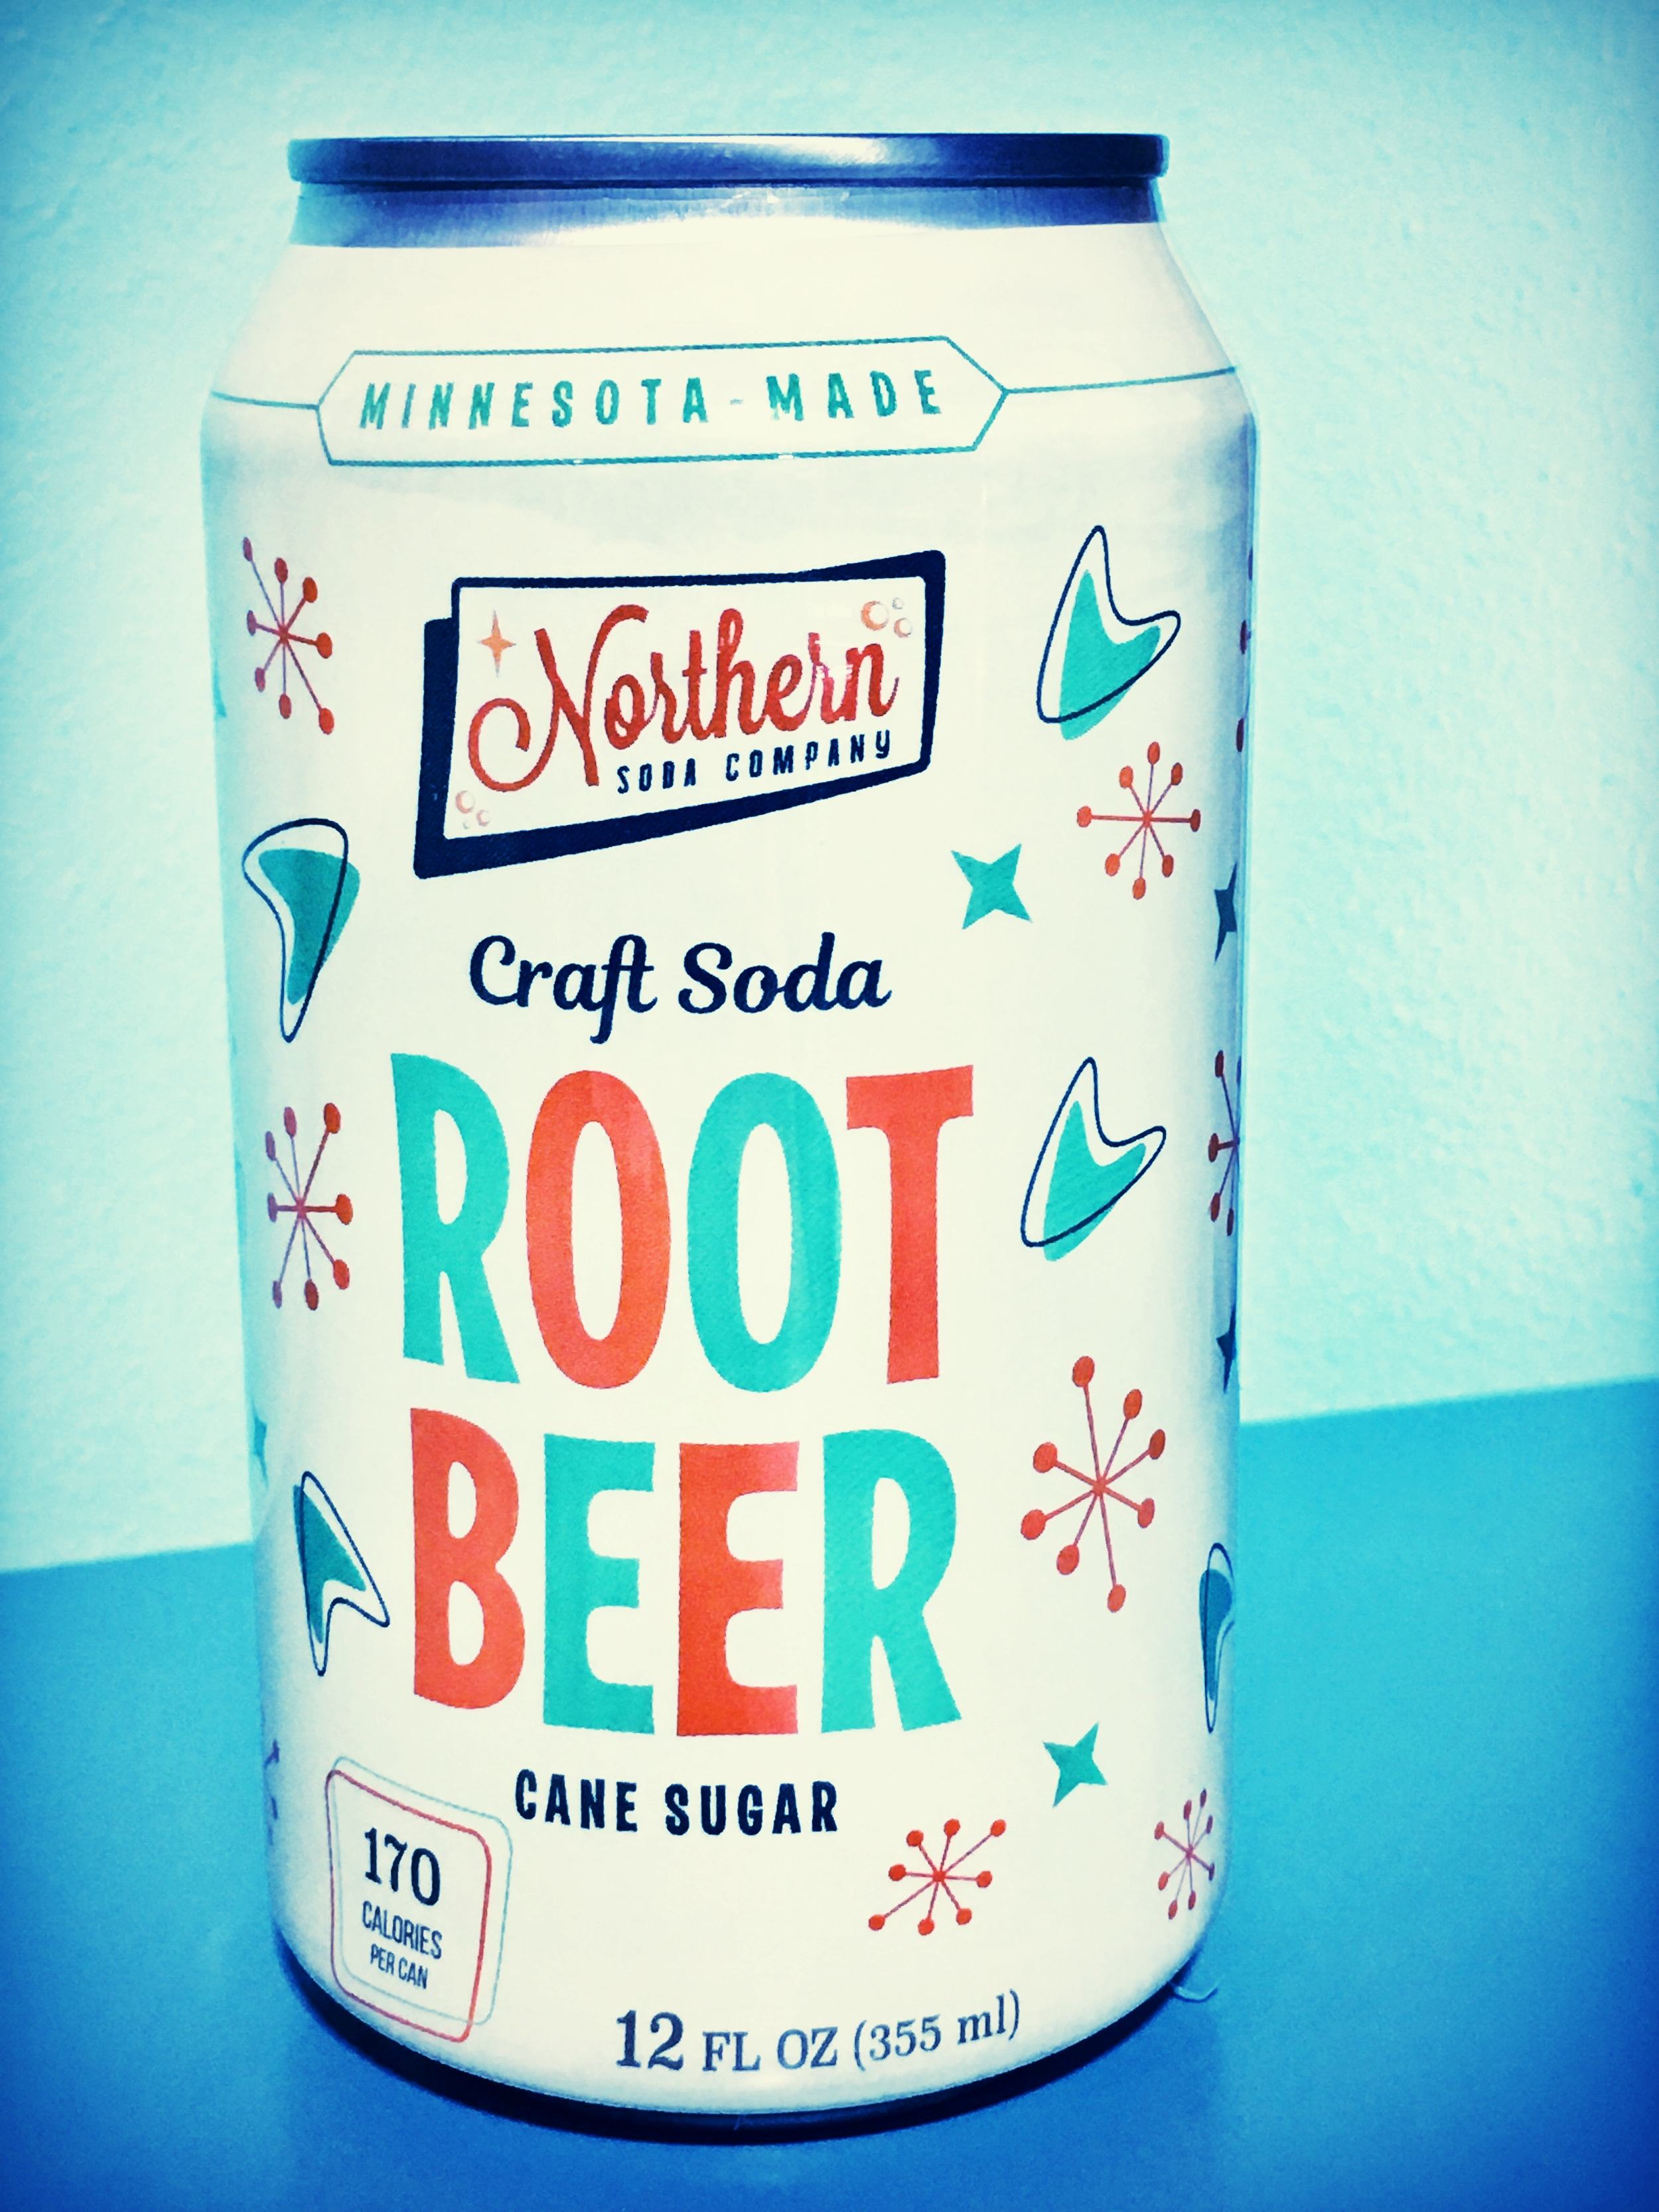 Northern's signature soda, our 50's style root beer, is creamy and complex—with hints of honey, vanilla, star anise, and a secret spice, that combine to make a one-of-a-kind root beer.